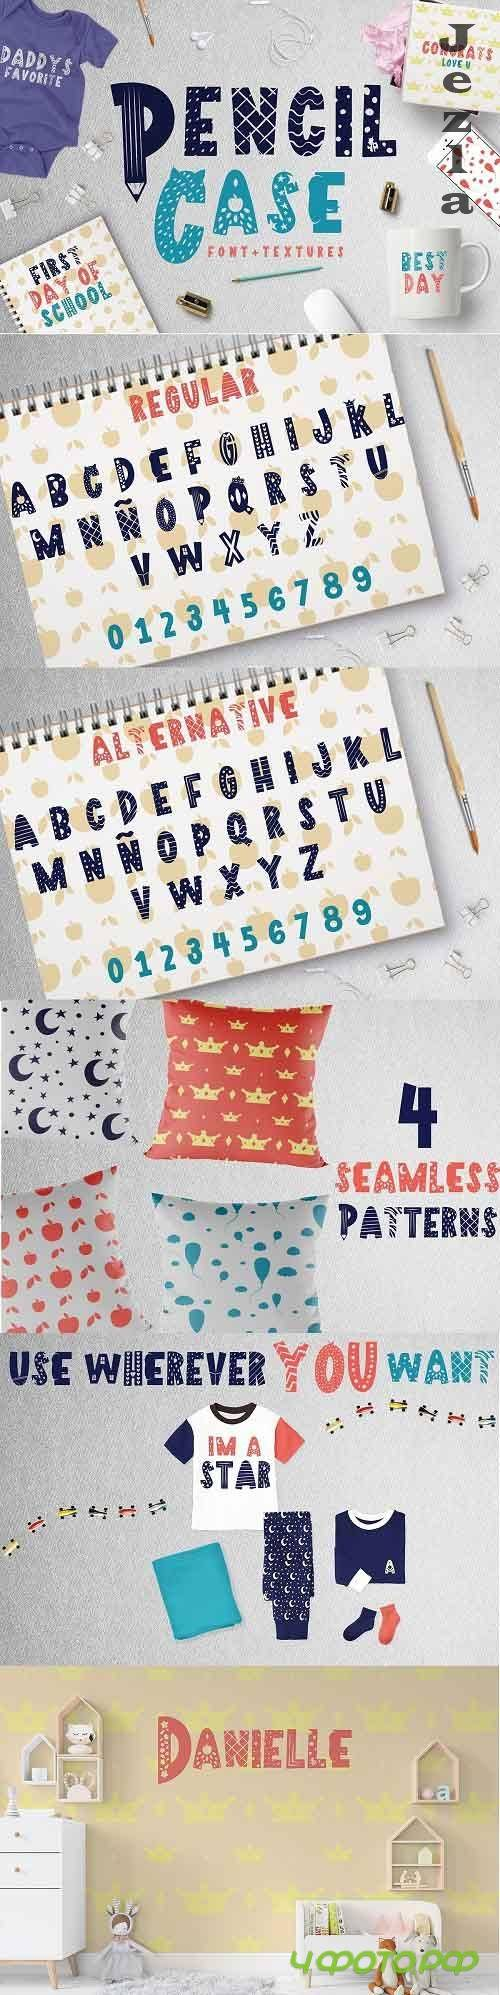 Pencil Case - Scandinavian kids font - 5136332